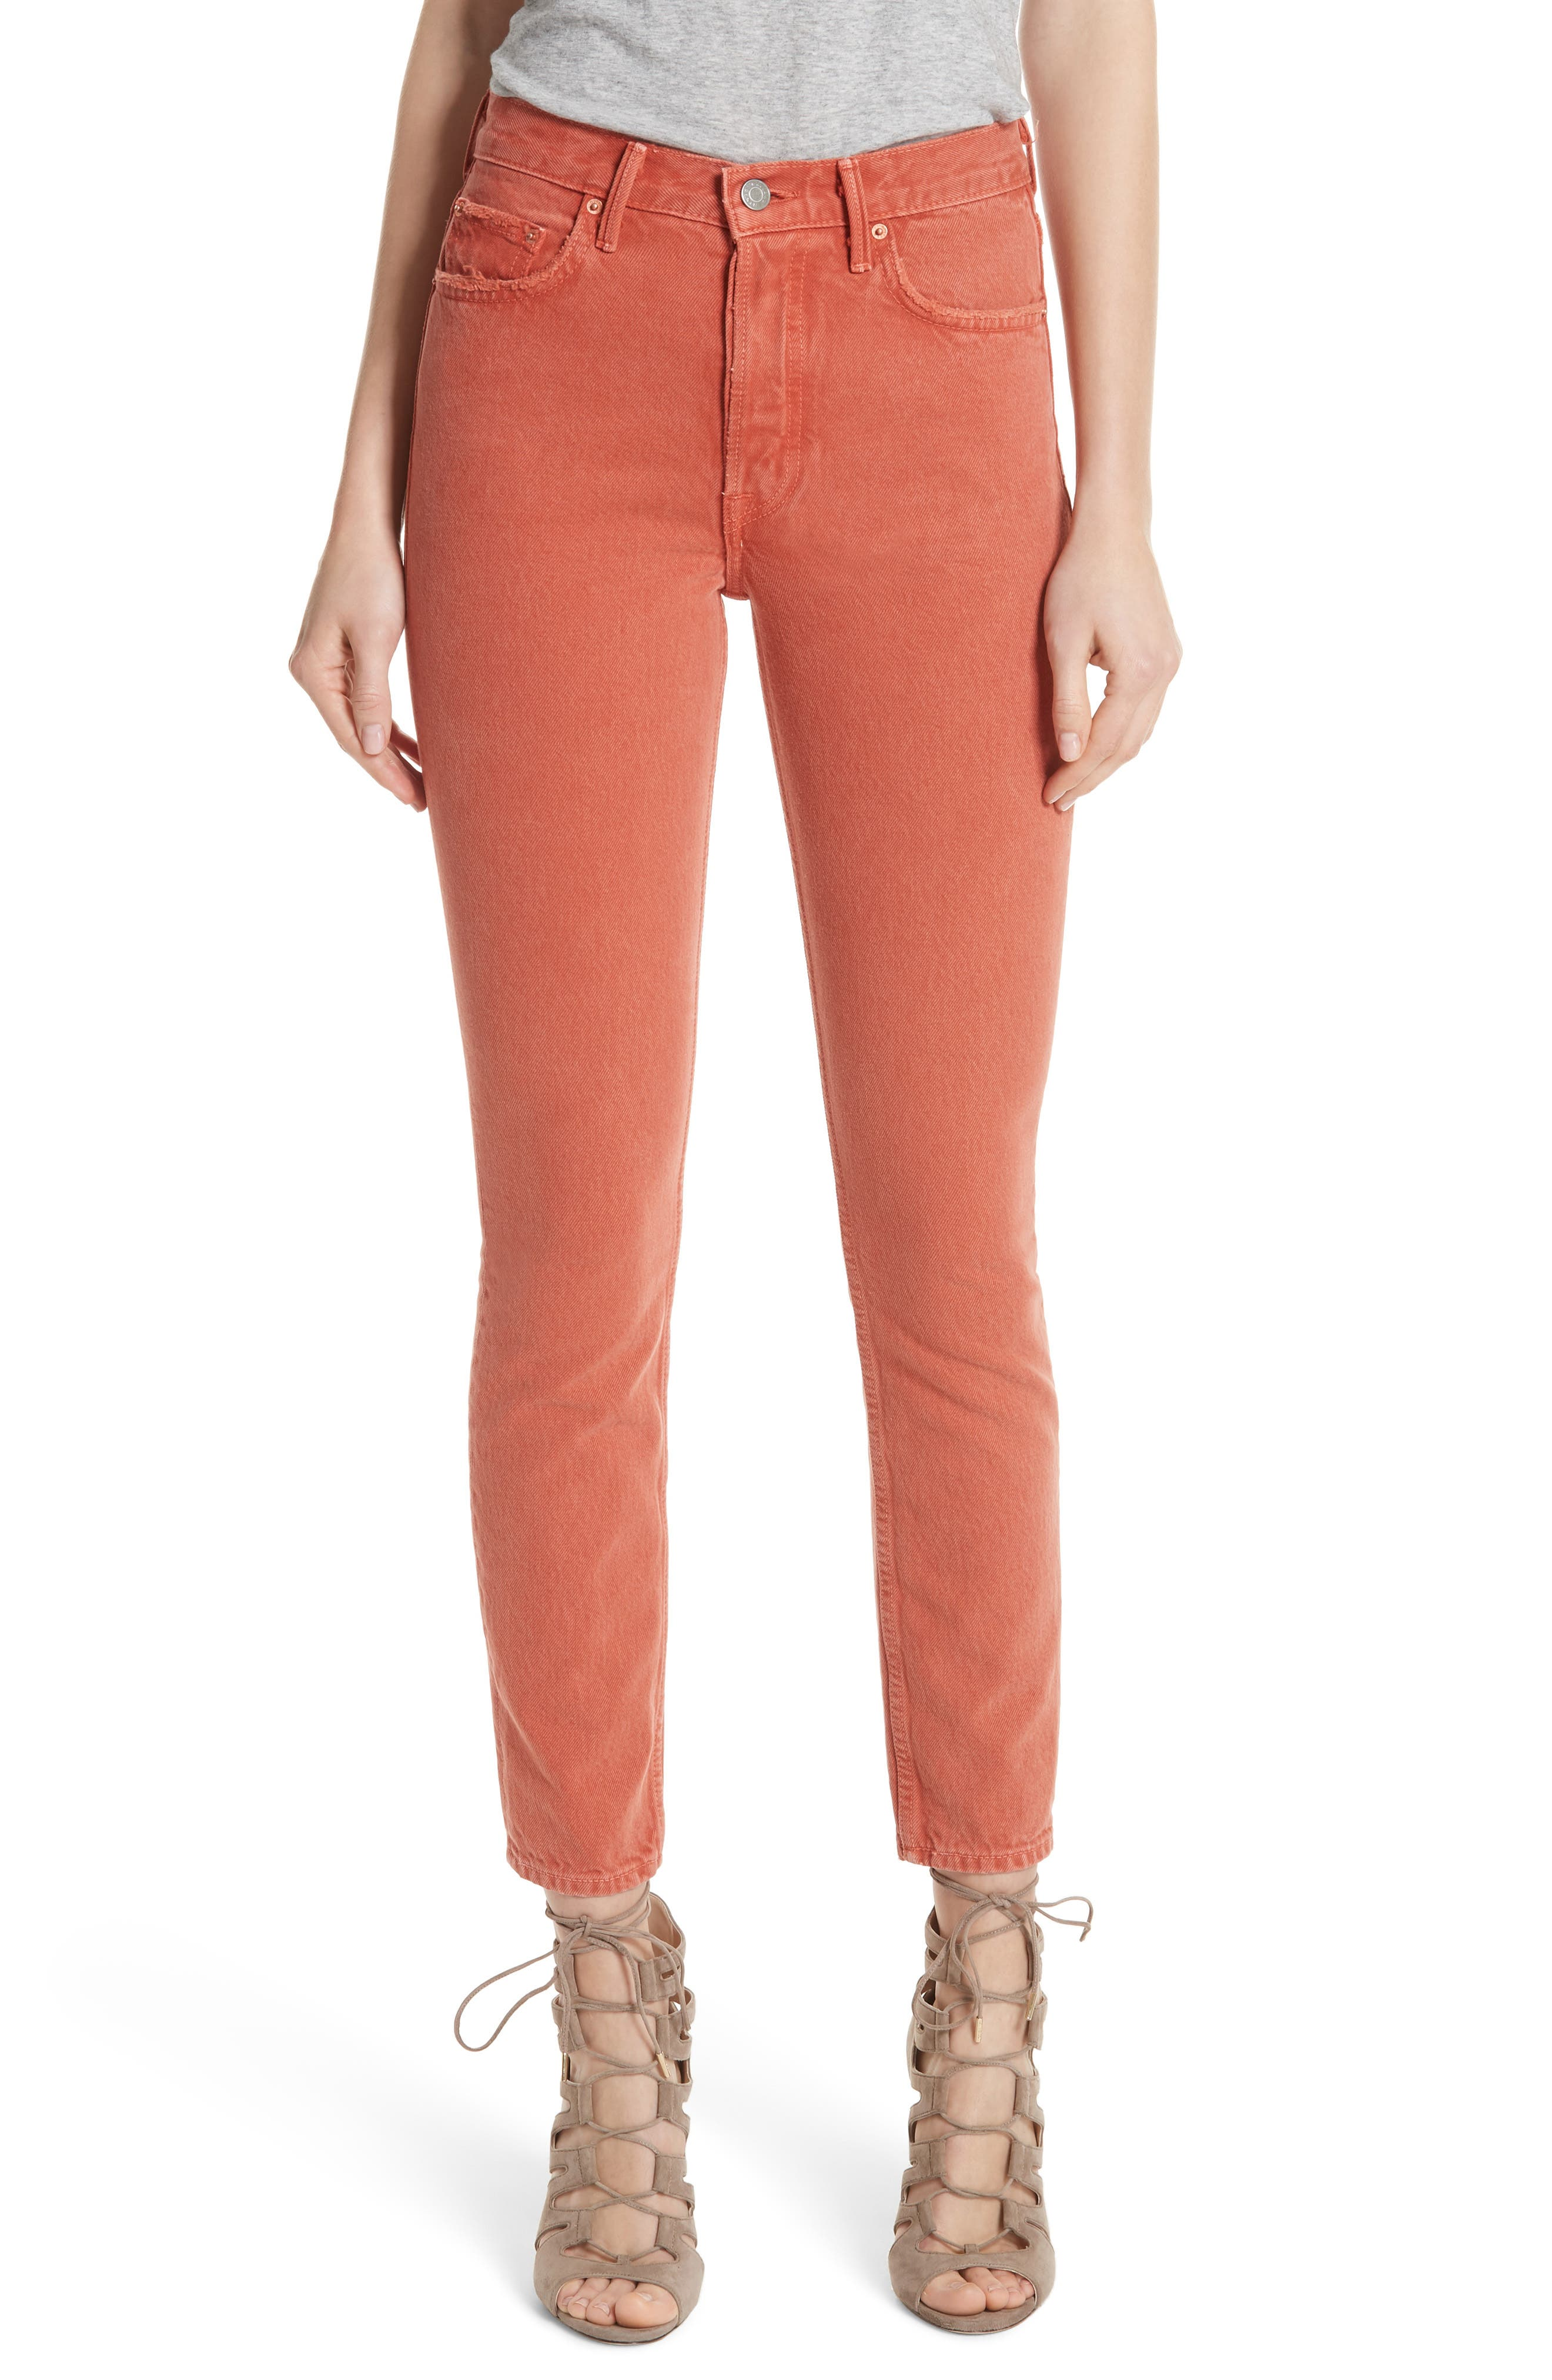 Karolina High Waist Skinny Jeans,                         Main,                         color, MARRAKECH